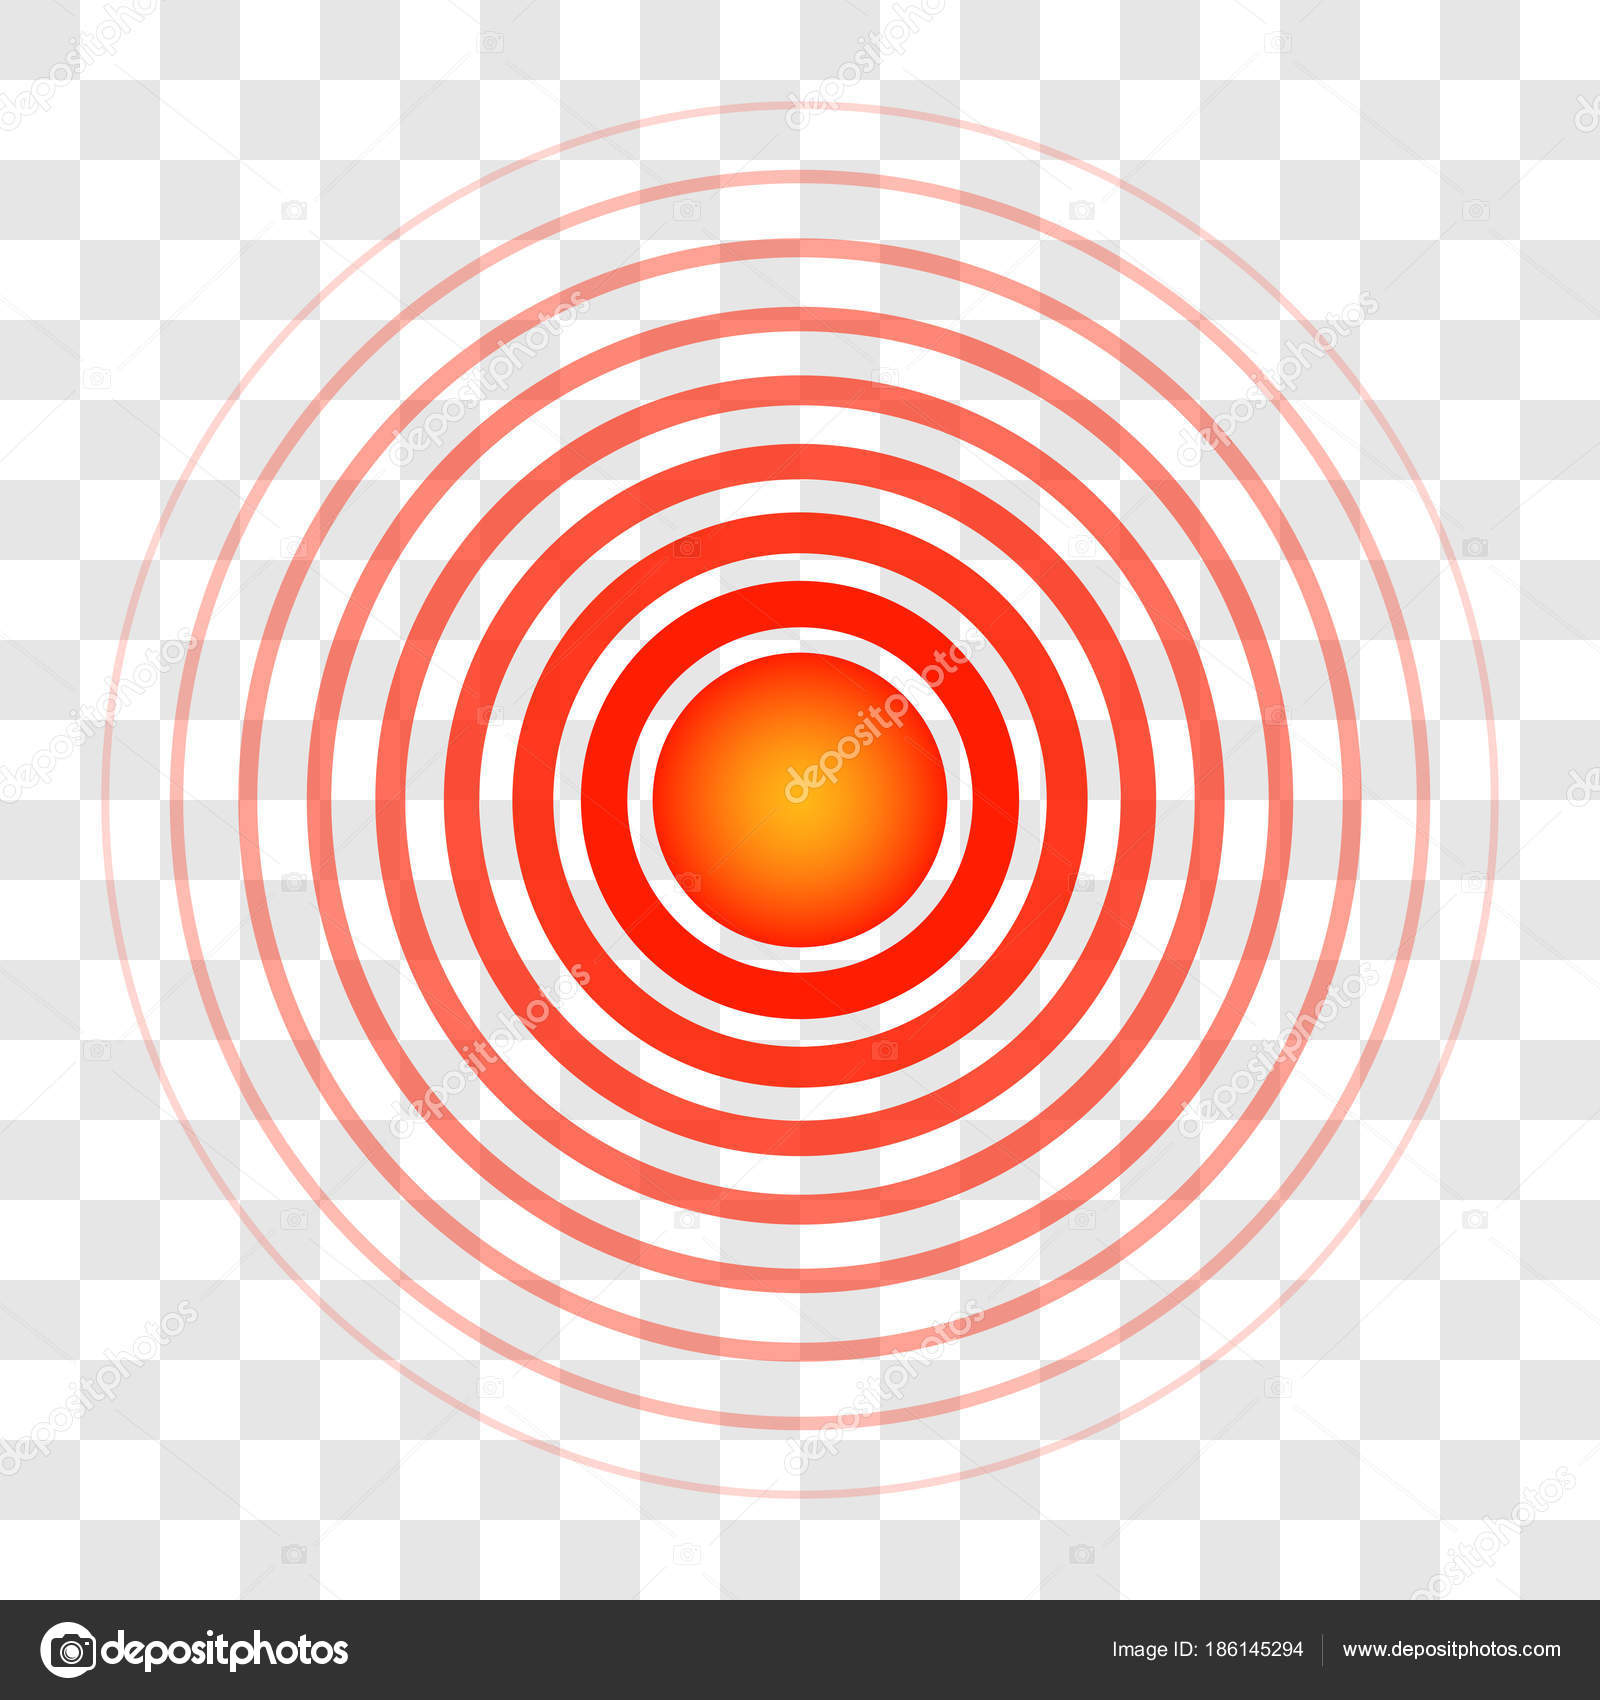 Ring circles target color of blood the sign of a symbol of pain ring circles the target color of blood the sign of a symbol of pain translucent rings vector pointing to the source of pain ailments medical sign of the buycottarizona Image collections